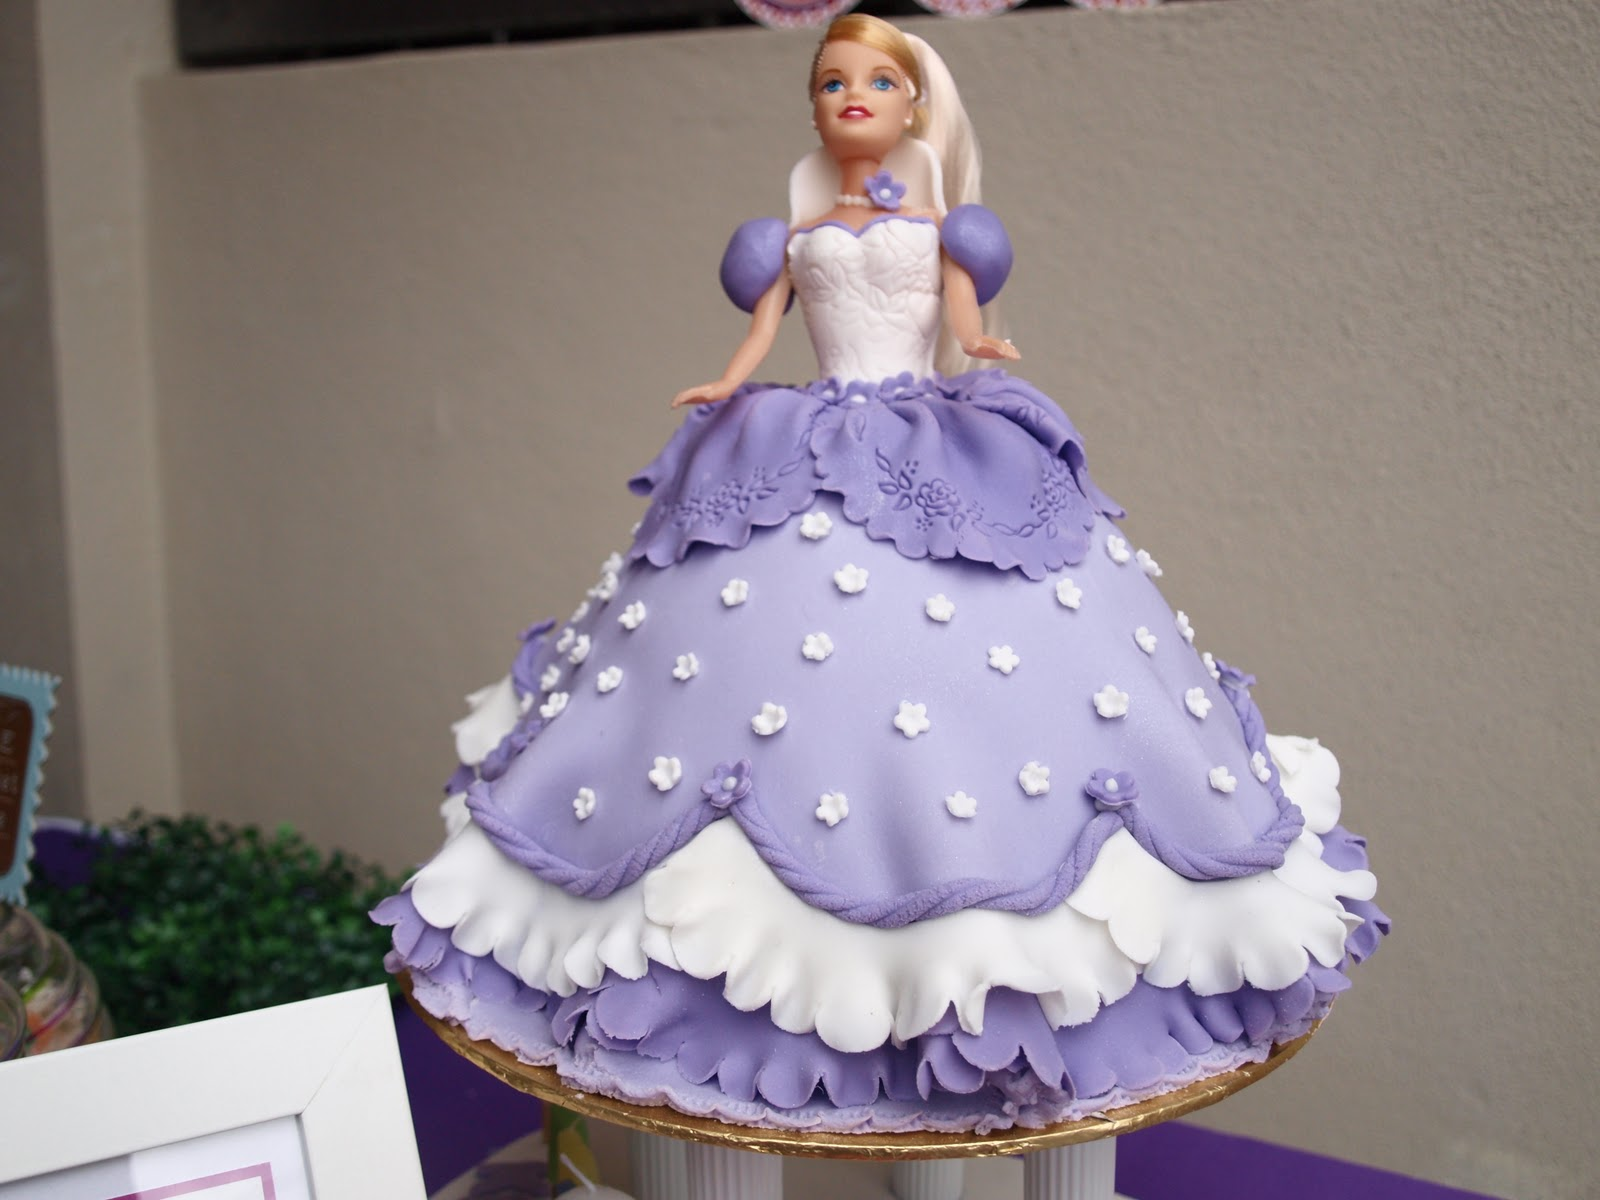 Barbie Doll Cake Decorating Ideas : barbie doll cake decoration idea 2 Barbie Doll Cakes ...